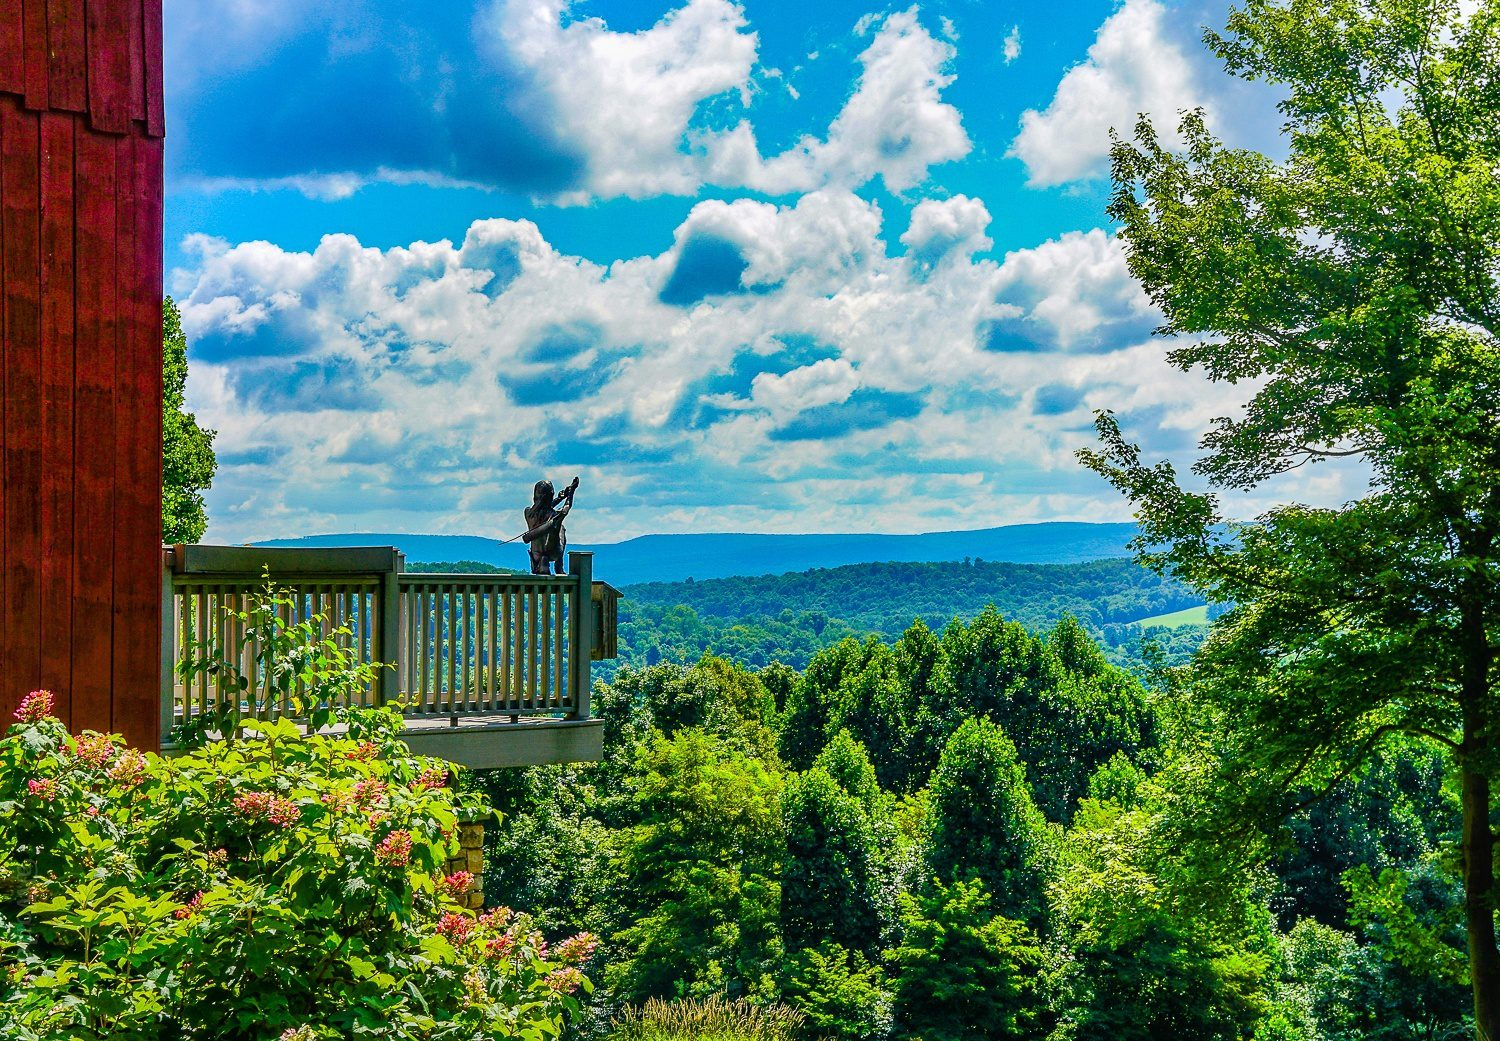 Nature rules in the Laurel Highlands.